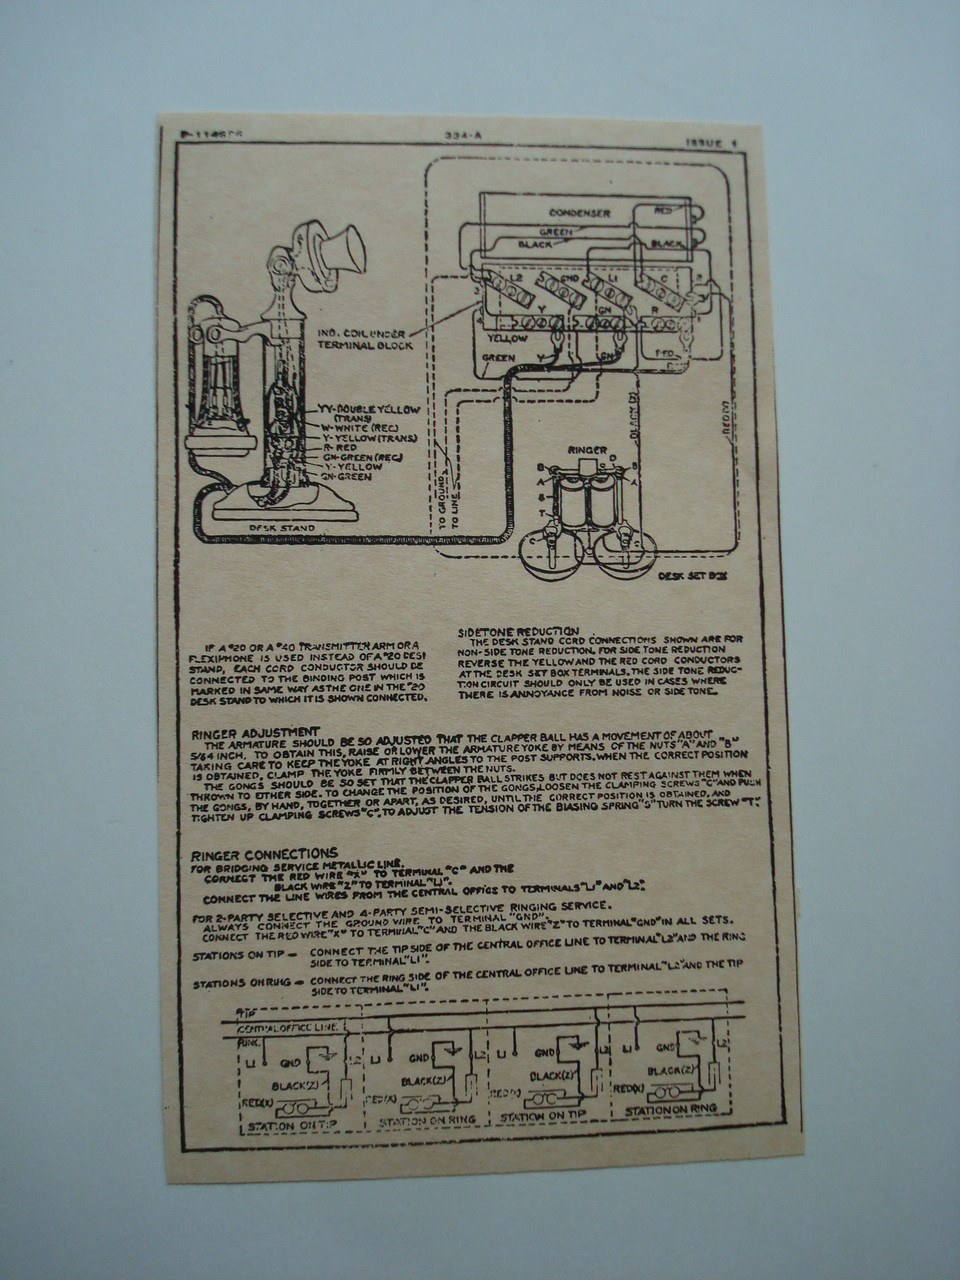 Western Electric 334A ringer subset box wiring diagram glue on | Old Phone Shop